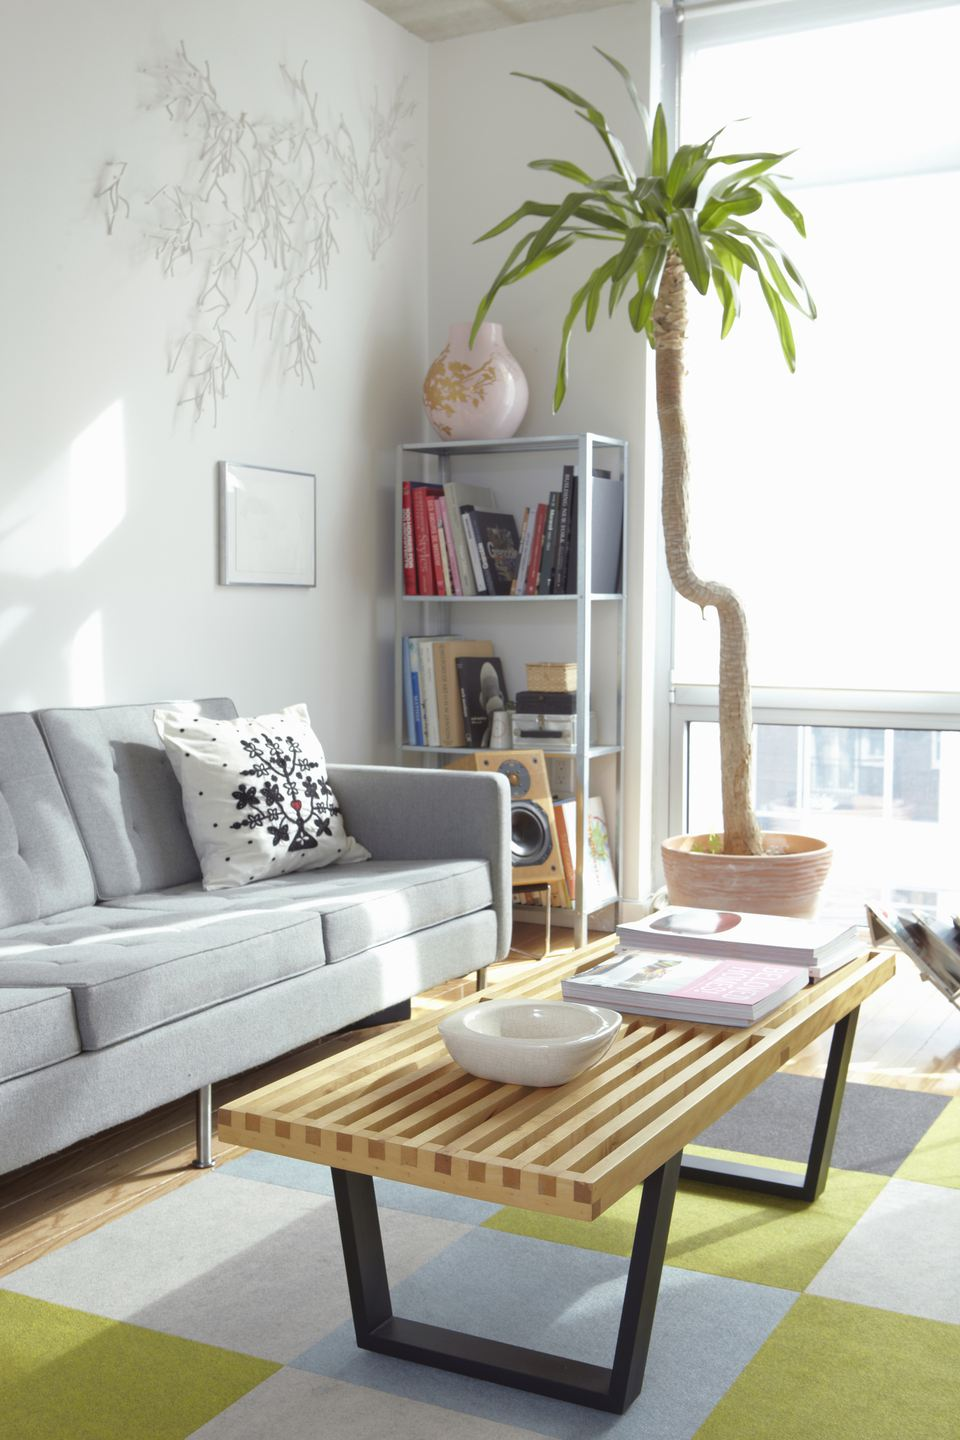 Organize Living Room Ideas: 8 Spaces You Should Declutter Every Week